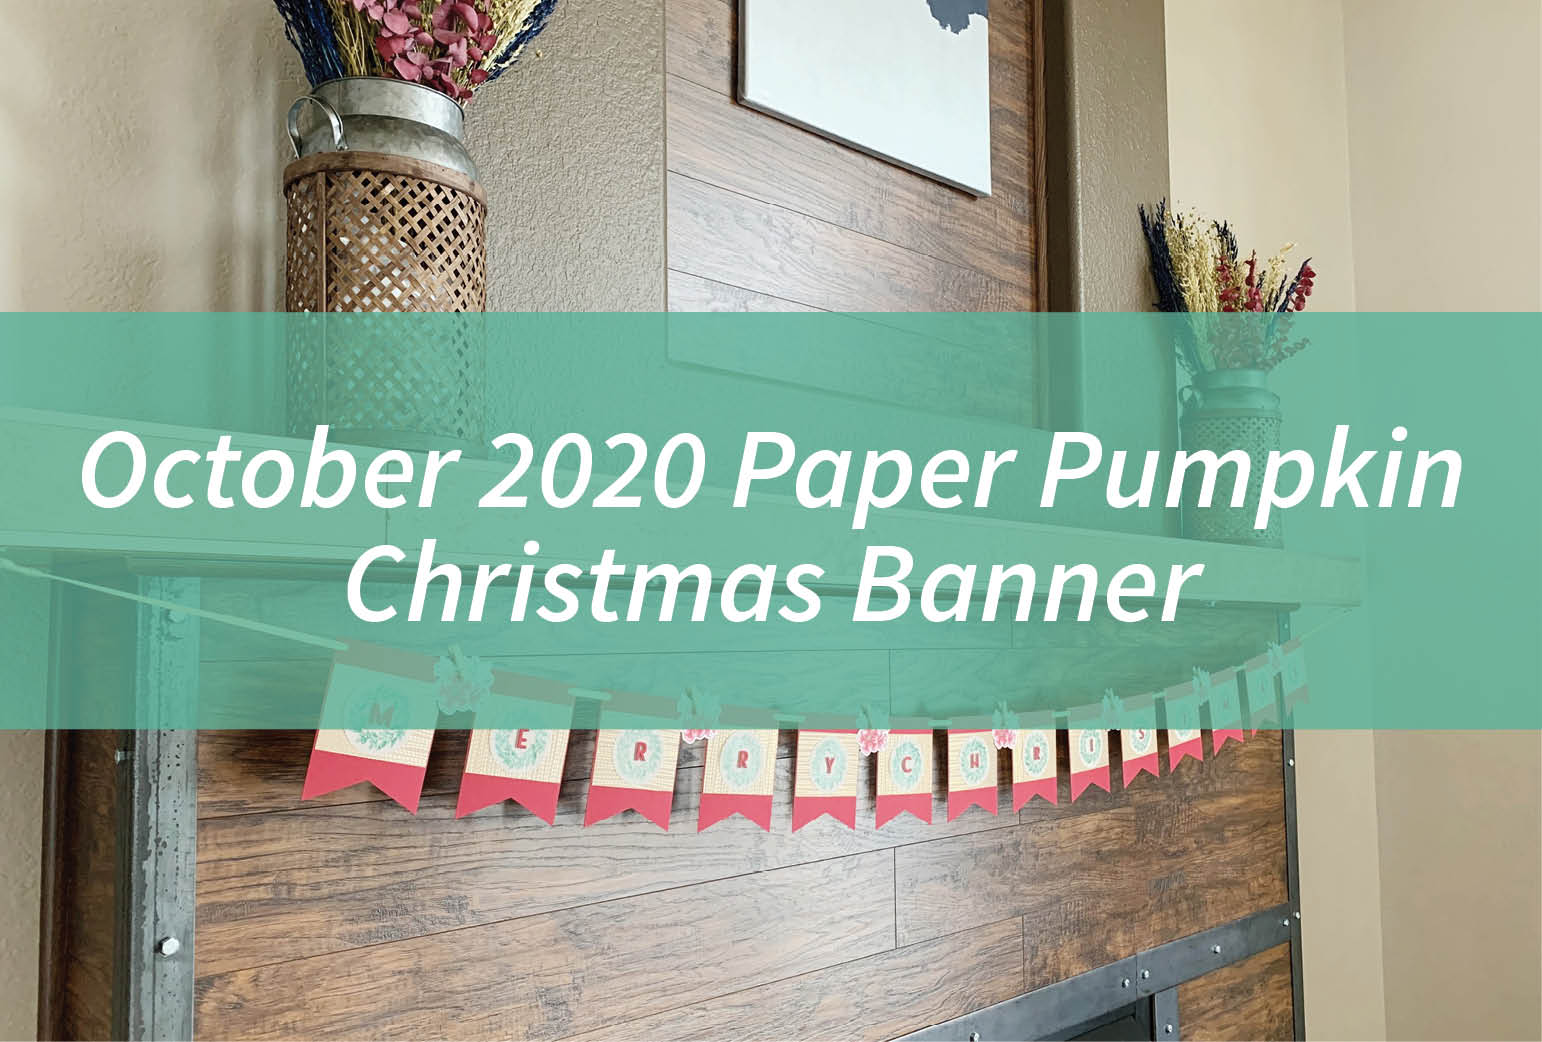 October 2020 Paper Pumpkin – Christmas Banner